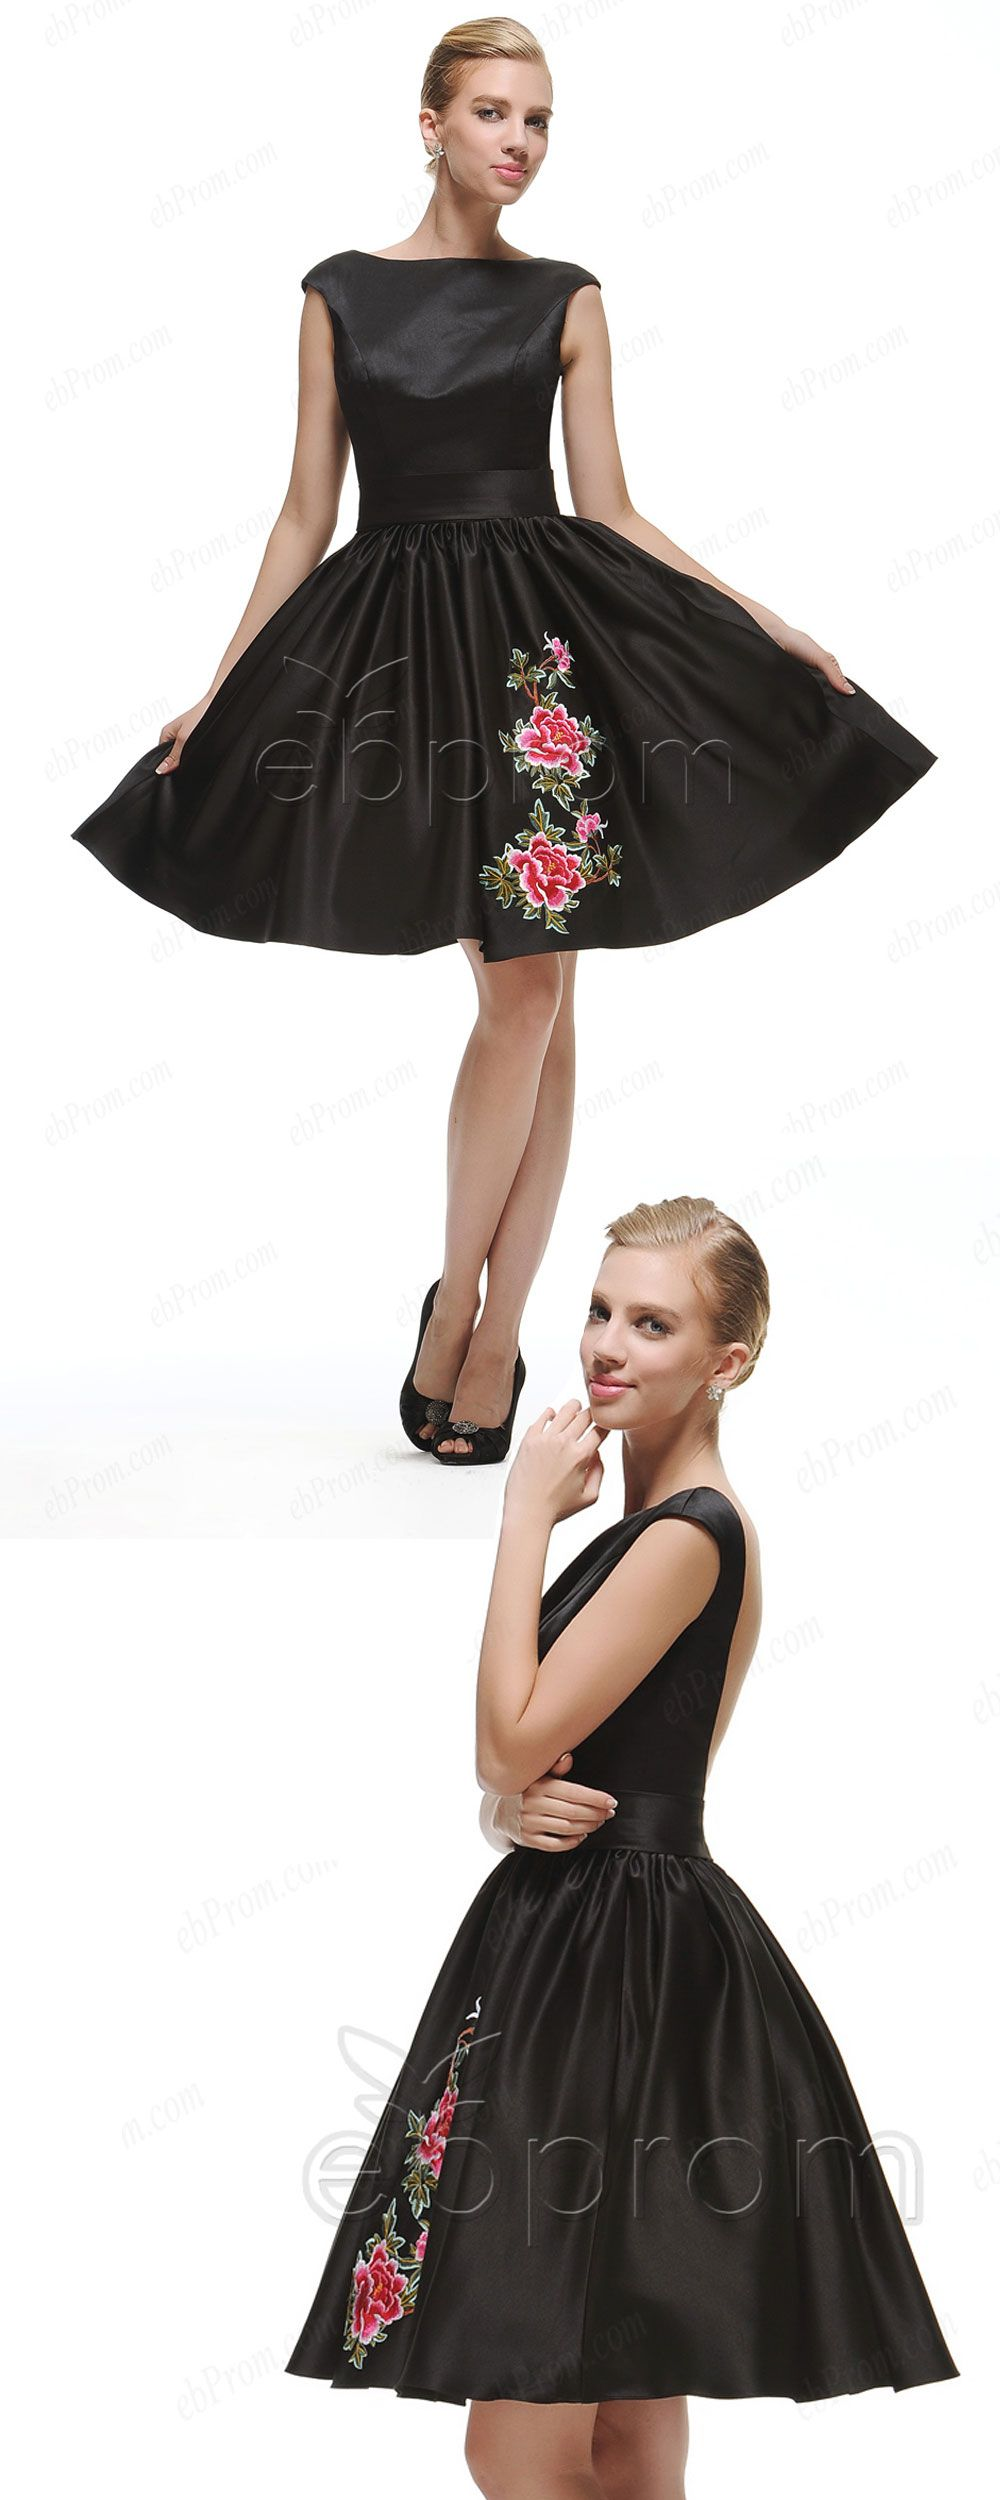 Black backless short prom dresses with embroidery | Short prom ...